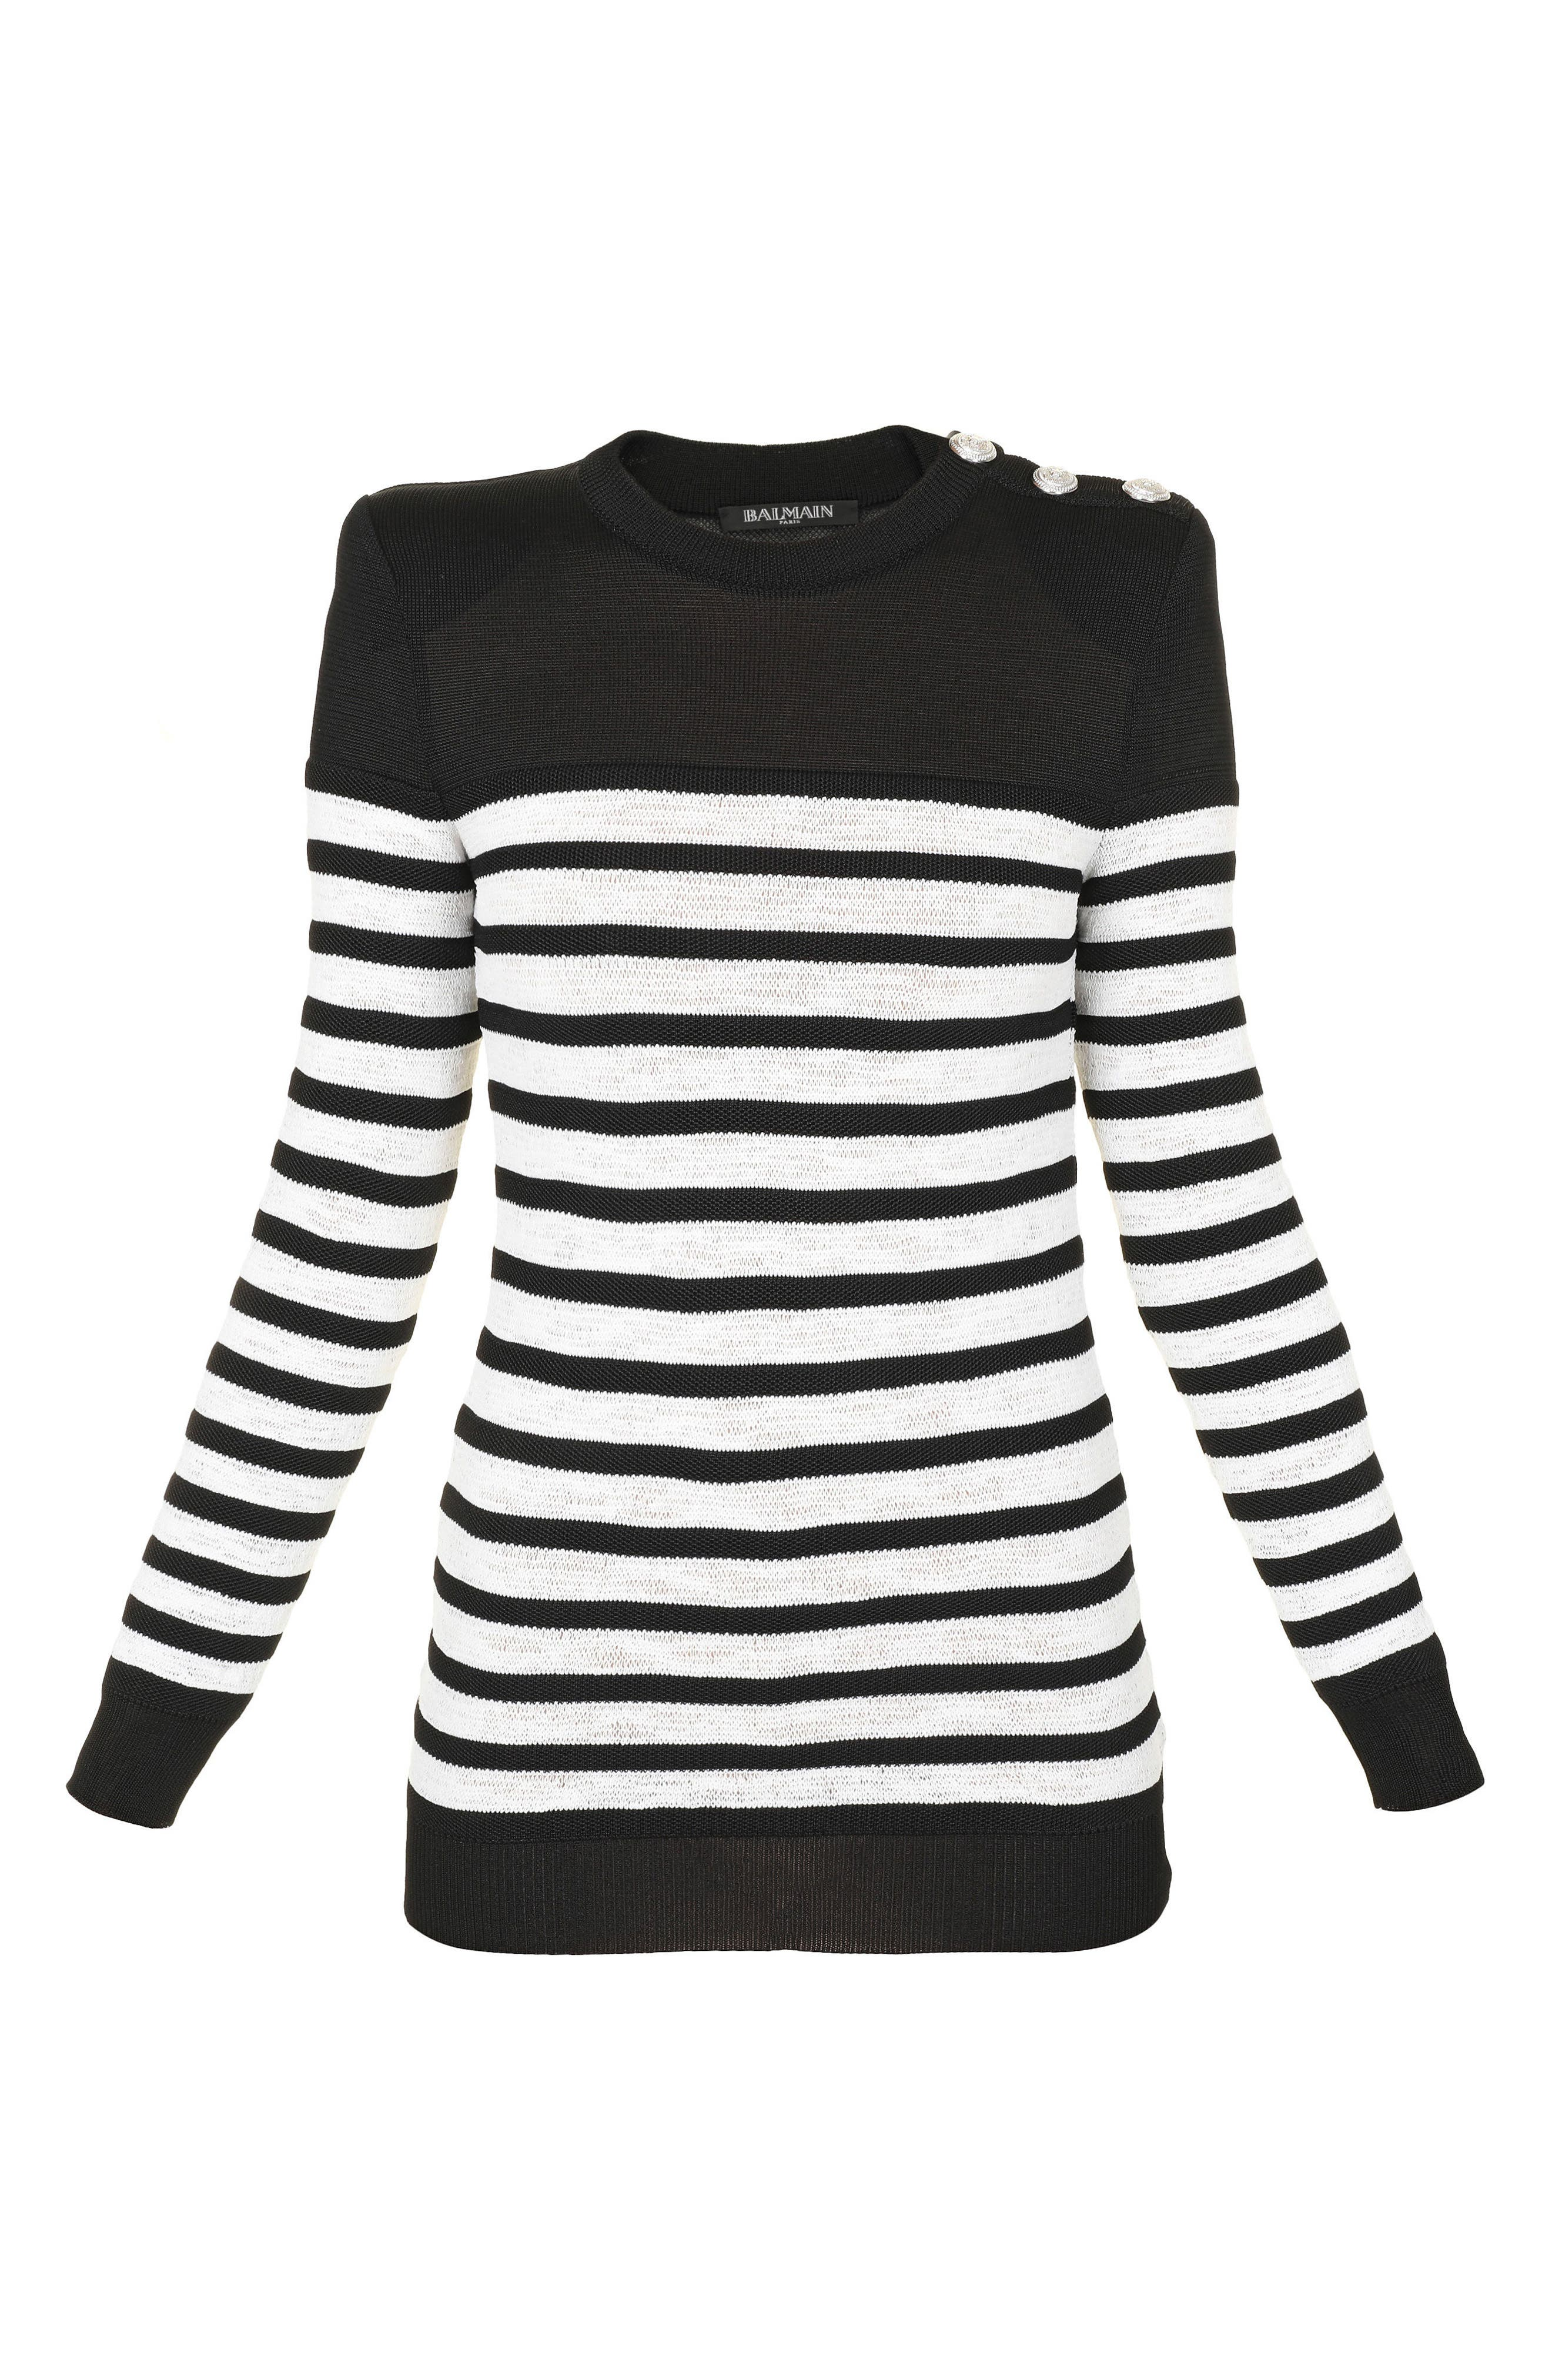 Marine Stripe Knit Sweater,                             Alternate thumbnail 6, color,                             Black And White